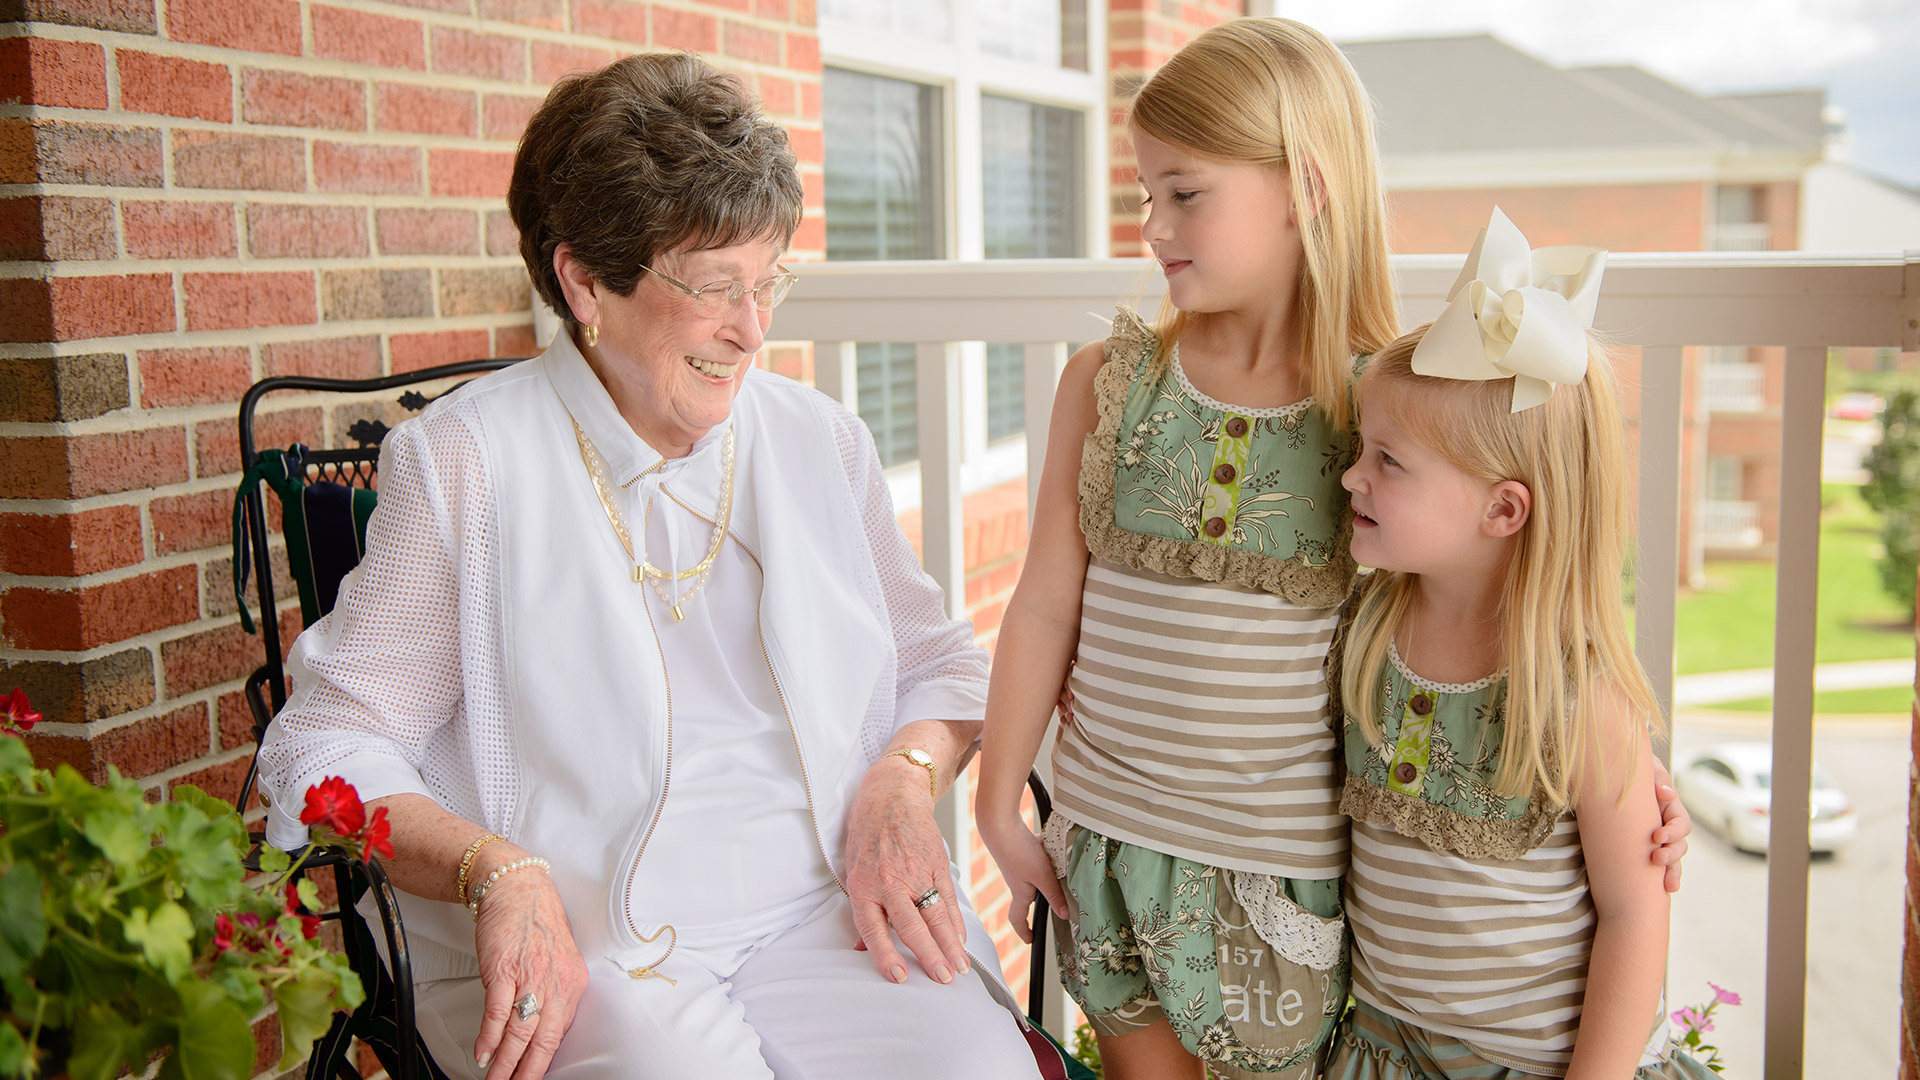 Three generations of women pose together at Capstone Village